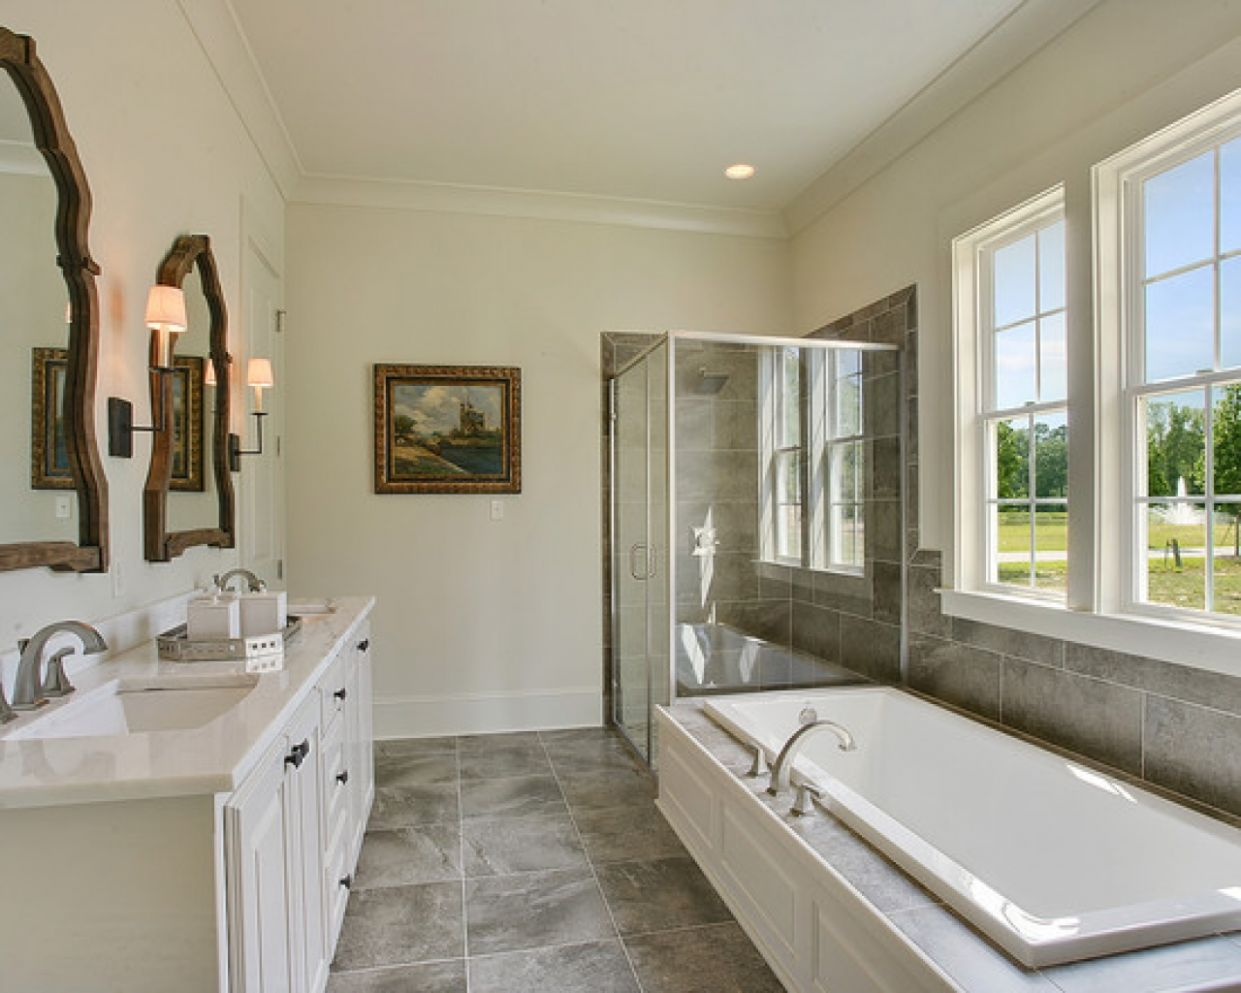 New Home Bathroom Ideas Video And Photos Landscaping Ranch ...